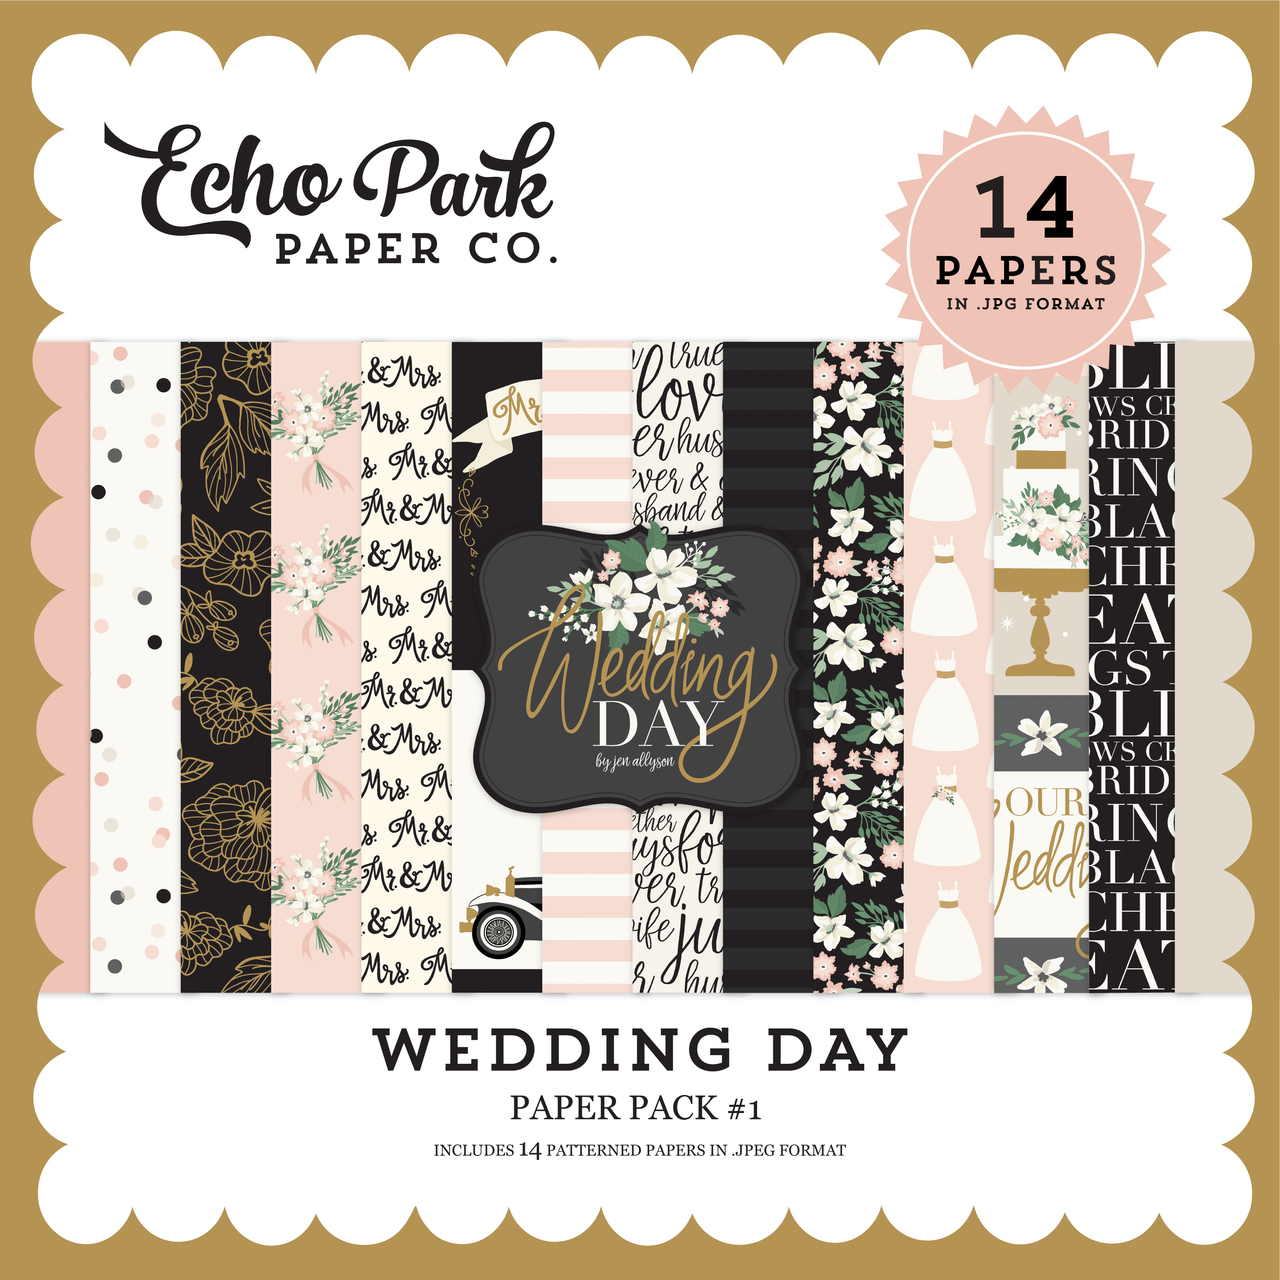 Wedding Day Paper Pack #1